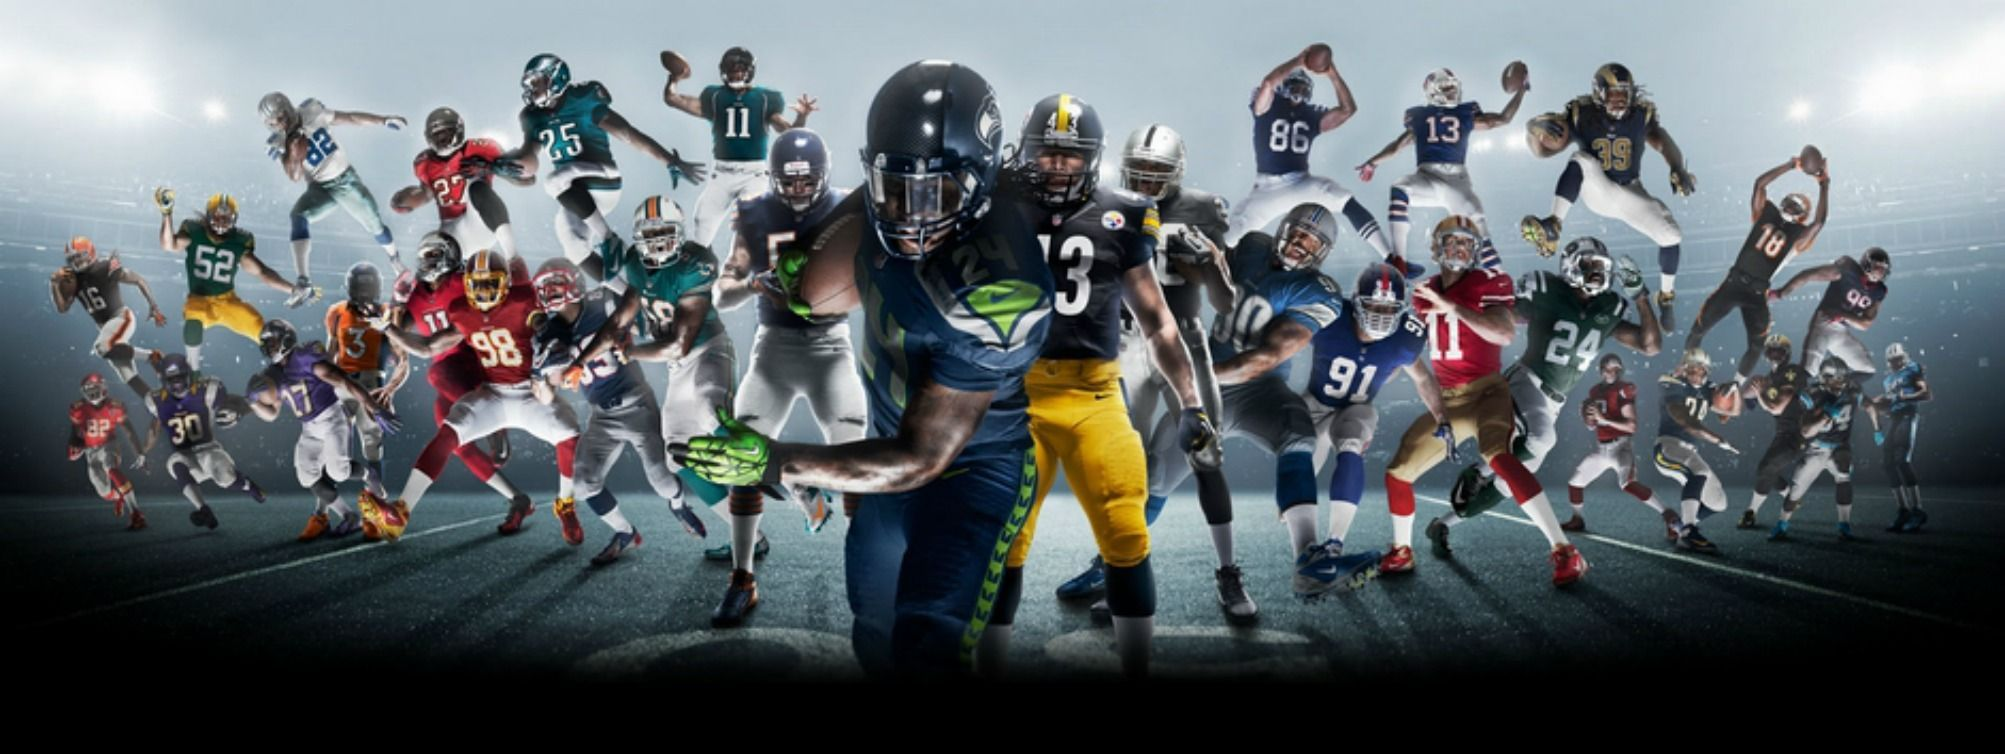 Nfl Football Wallpapers